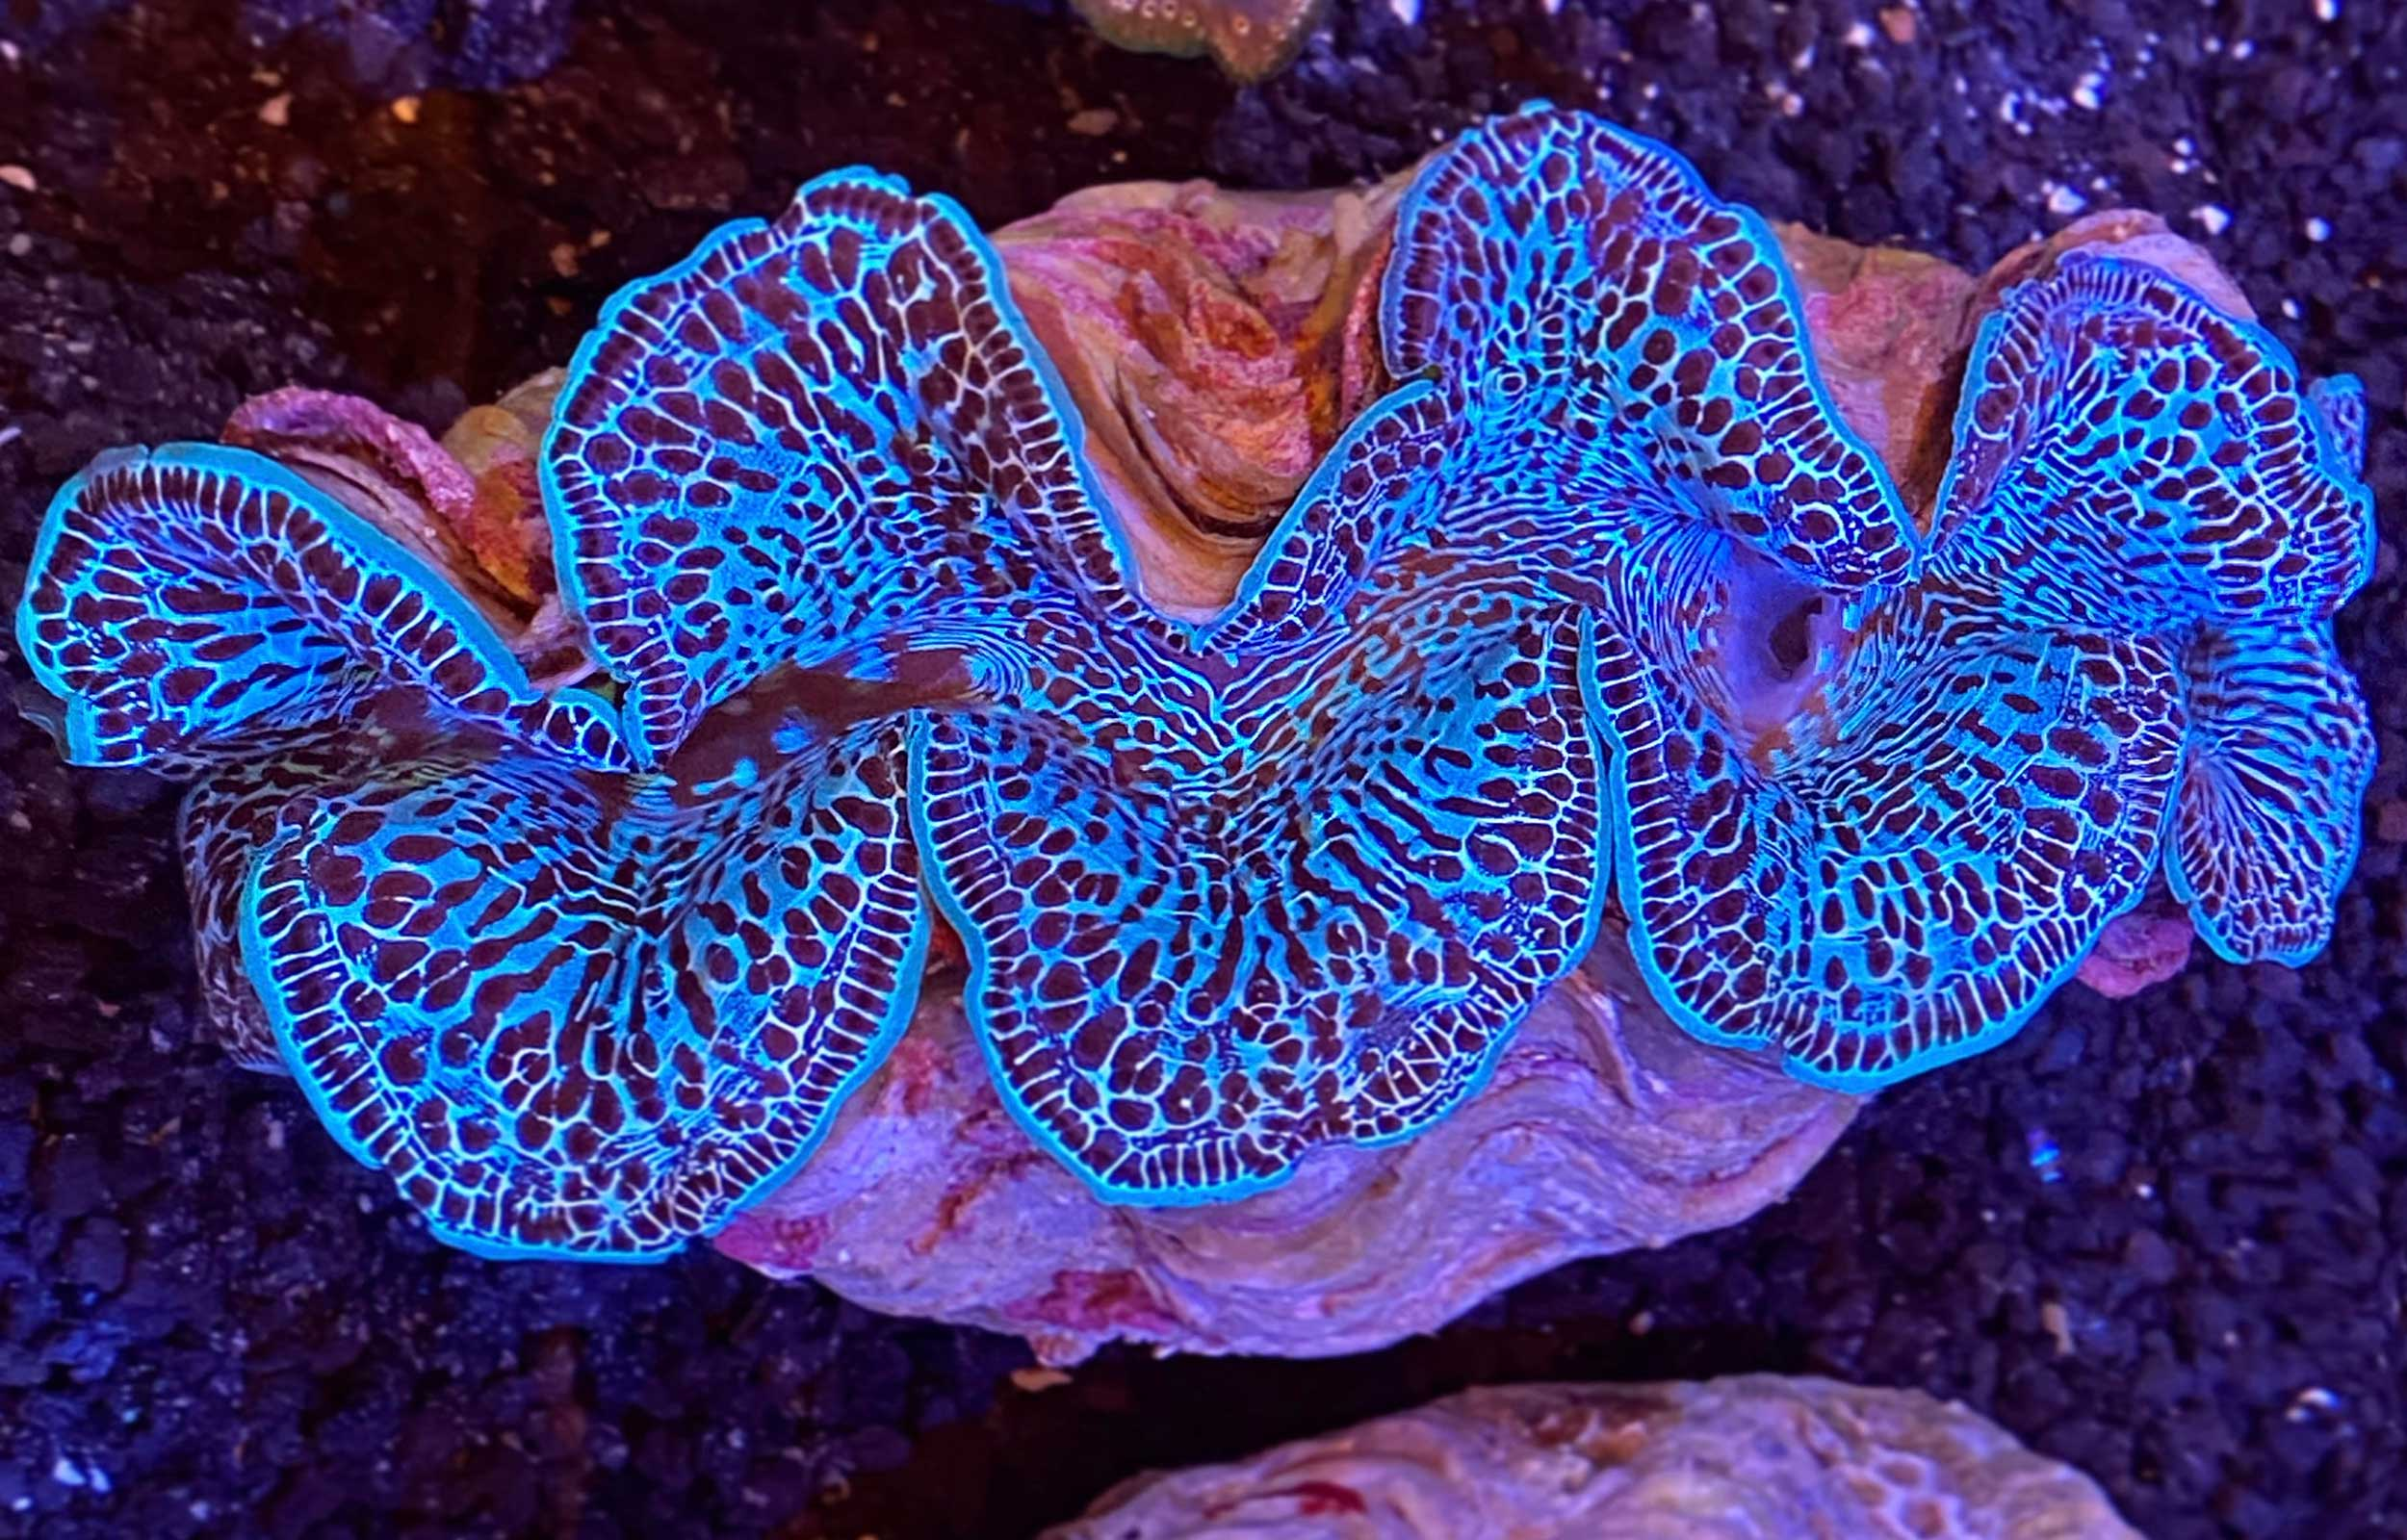 baby blue maxima clam first place 2021 research photo contest winner